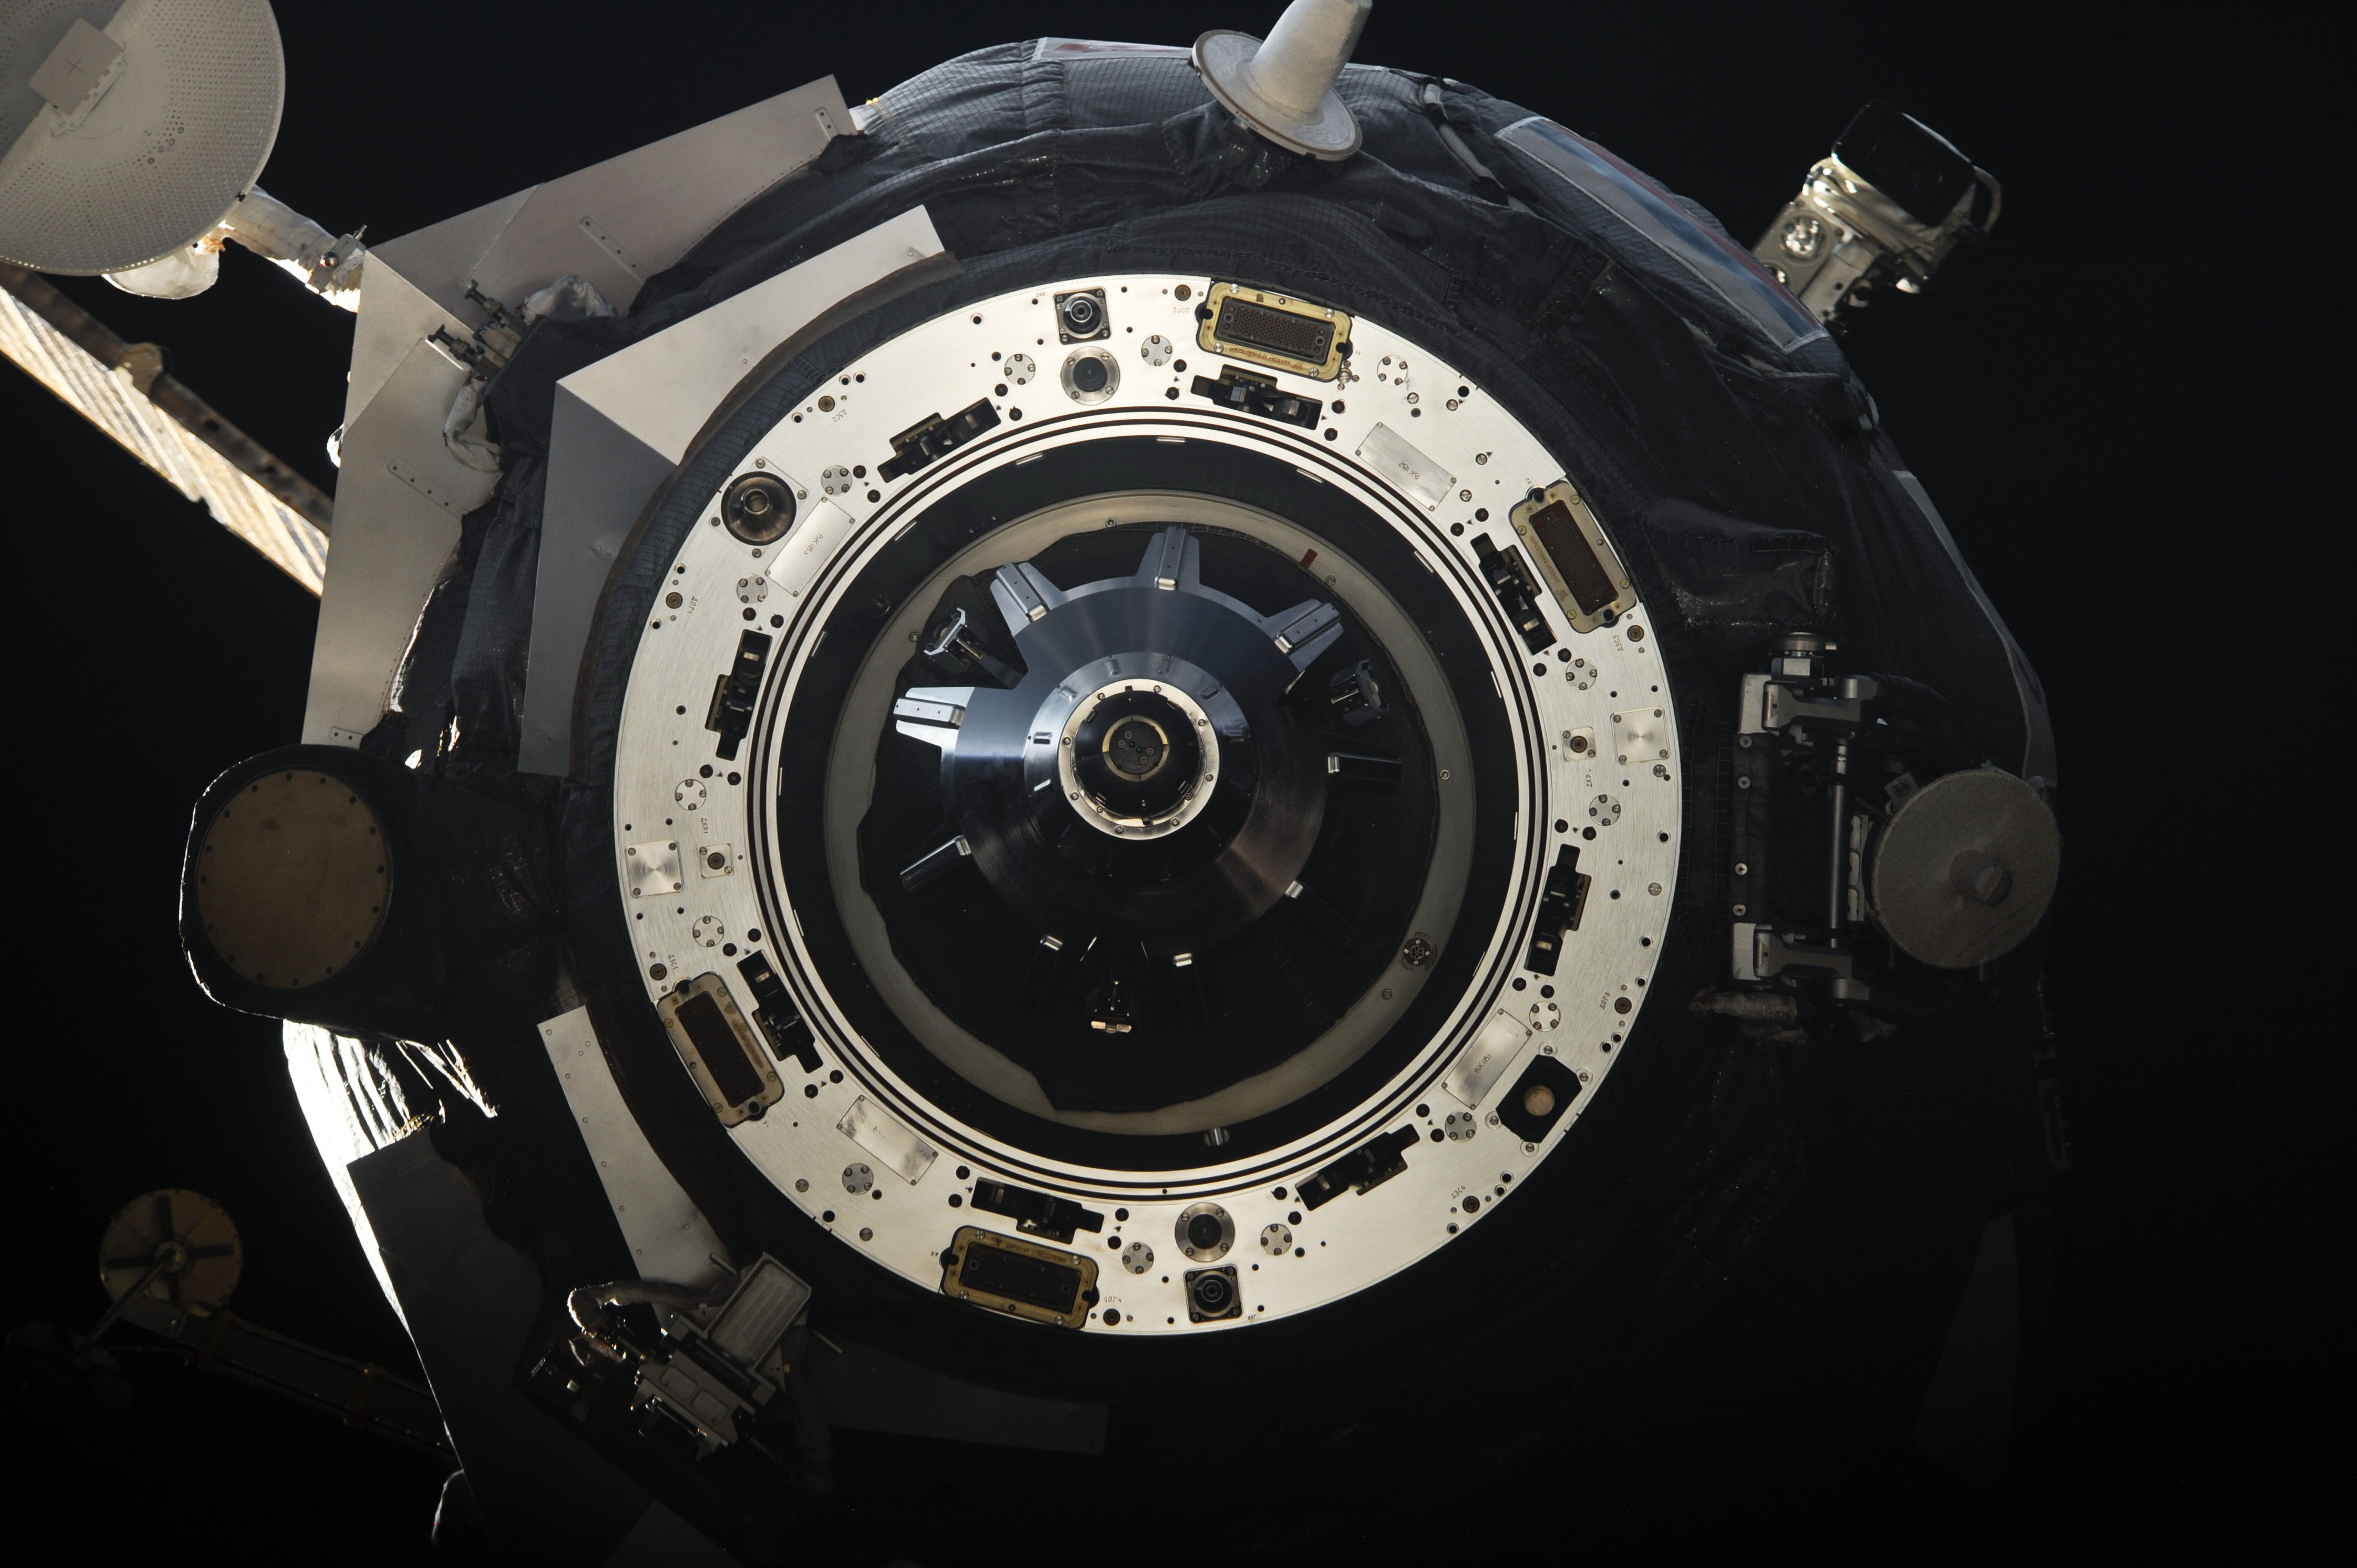 iss-28 progress m-11m supply vehicle departs from the iss.jpg